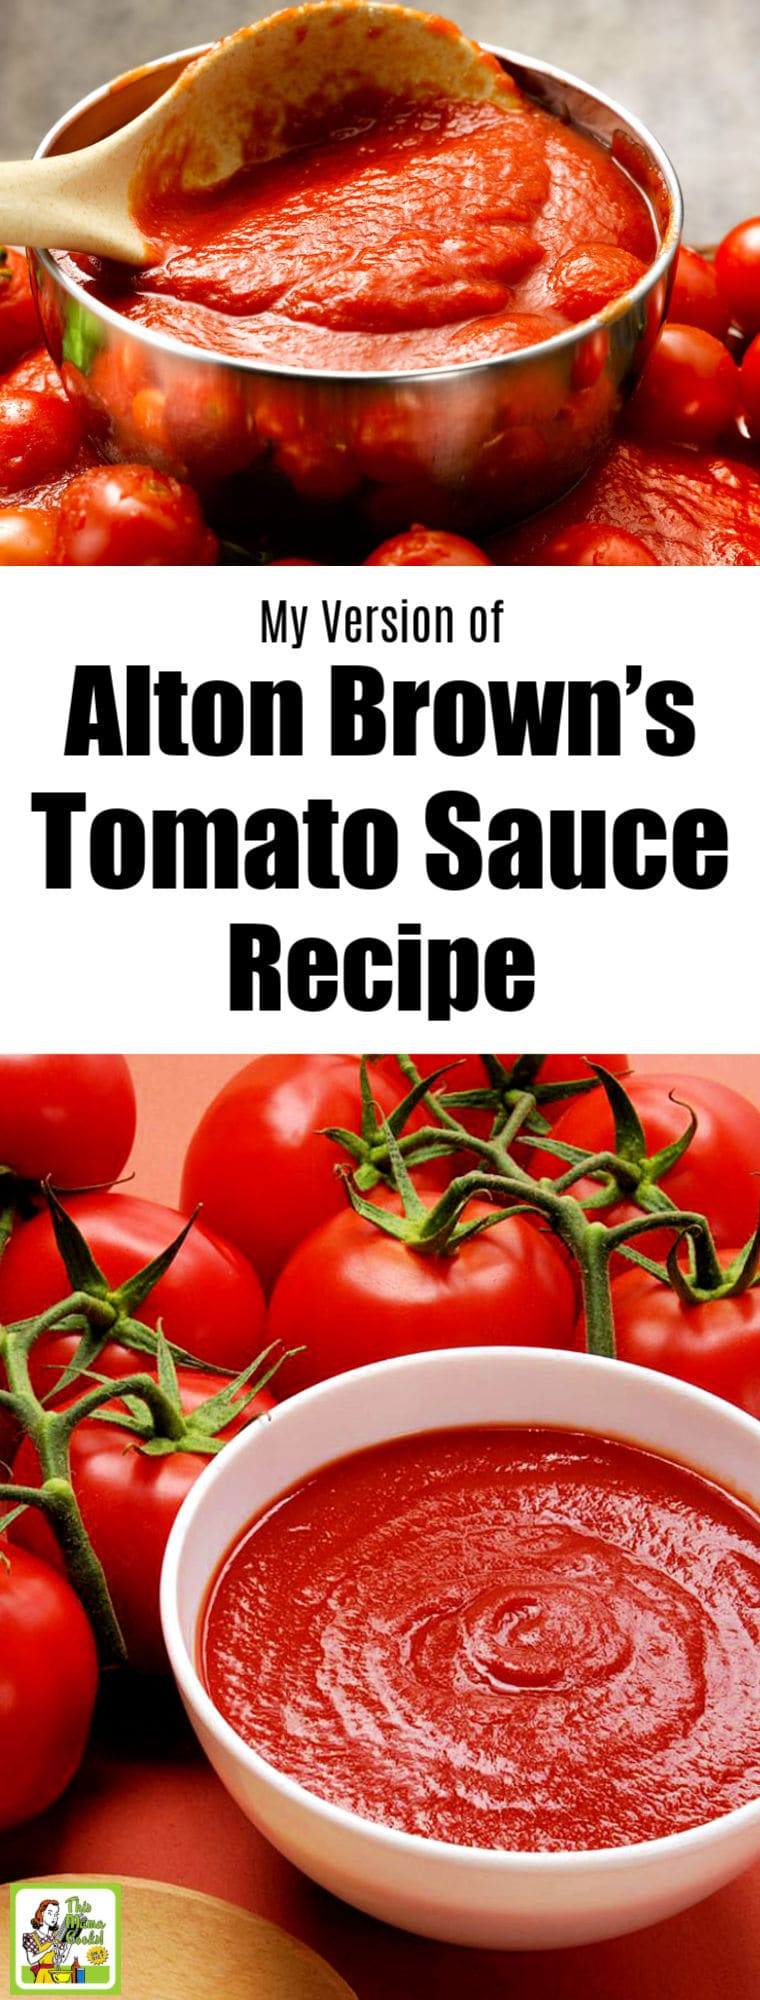 My Version of Alton Brown's Tomato Sauce Recipe